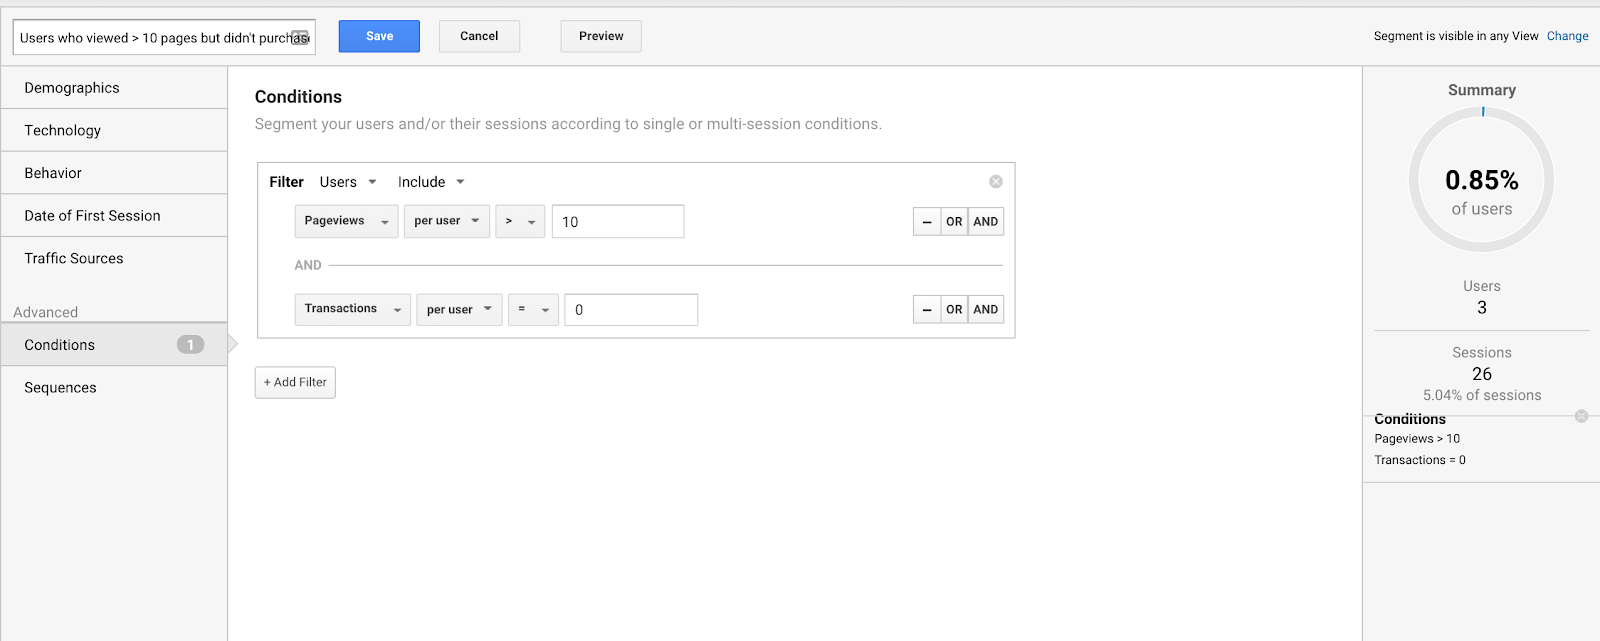 Set up Conditional Segments to analyze subsets of users deeper.